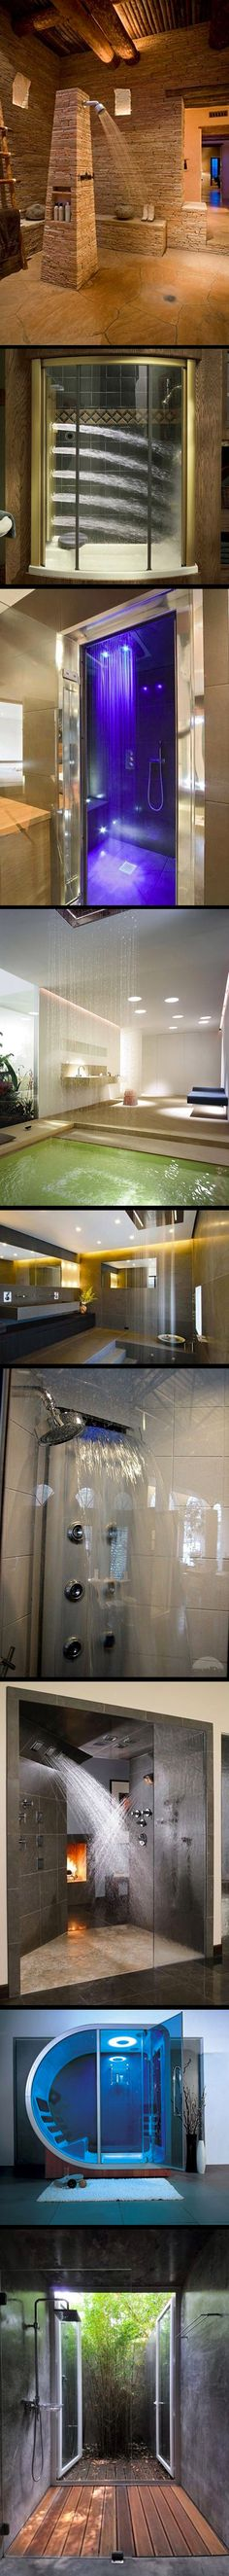 The greatest showers in the world.